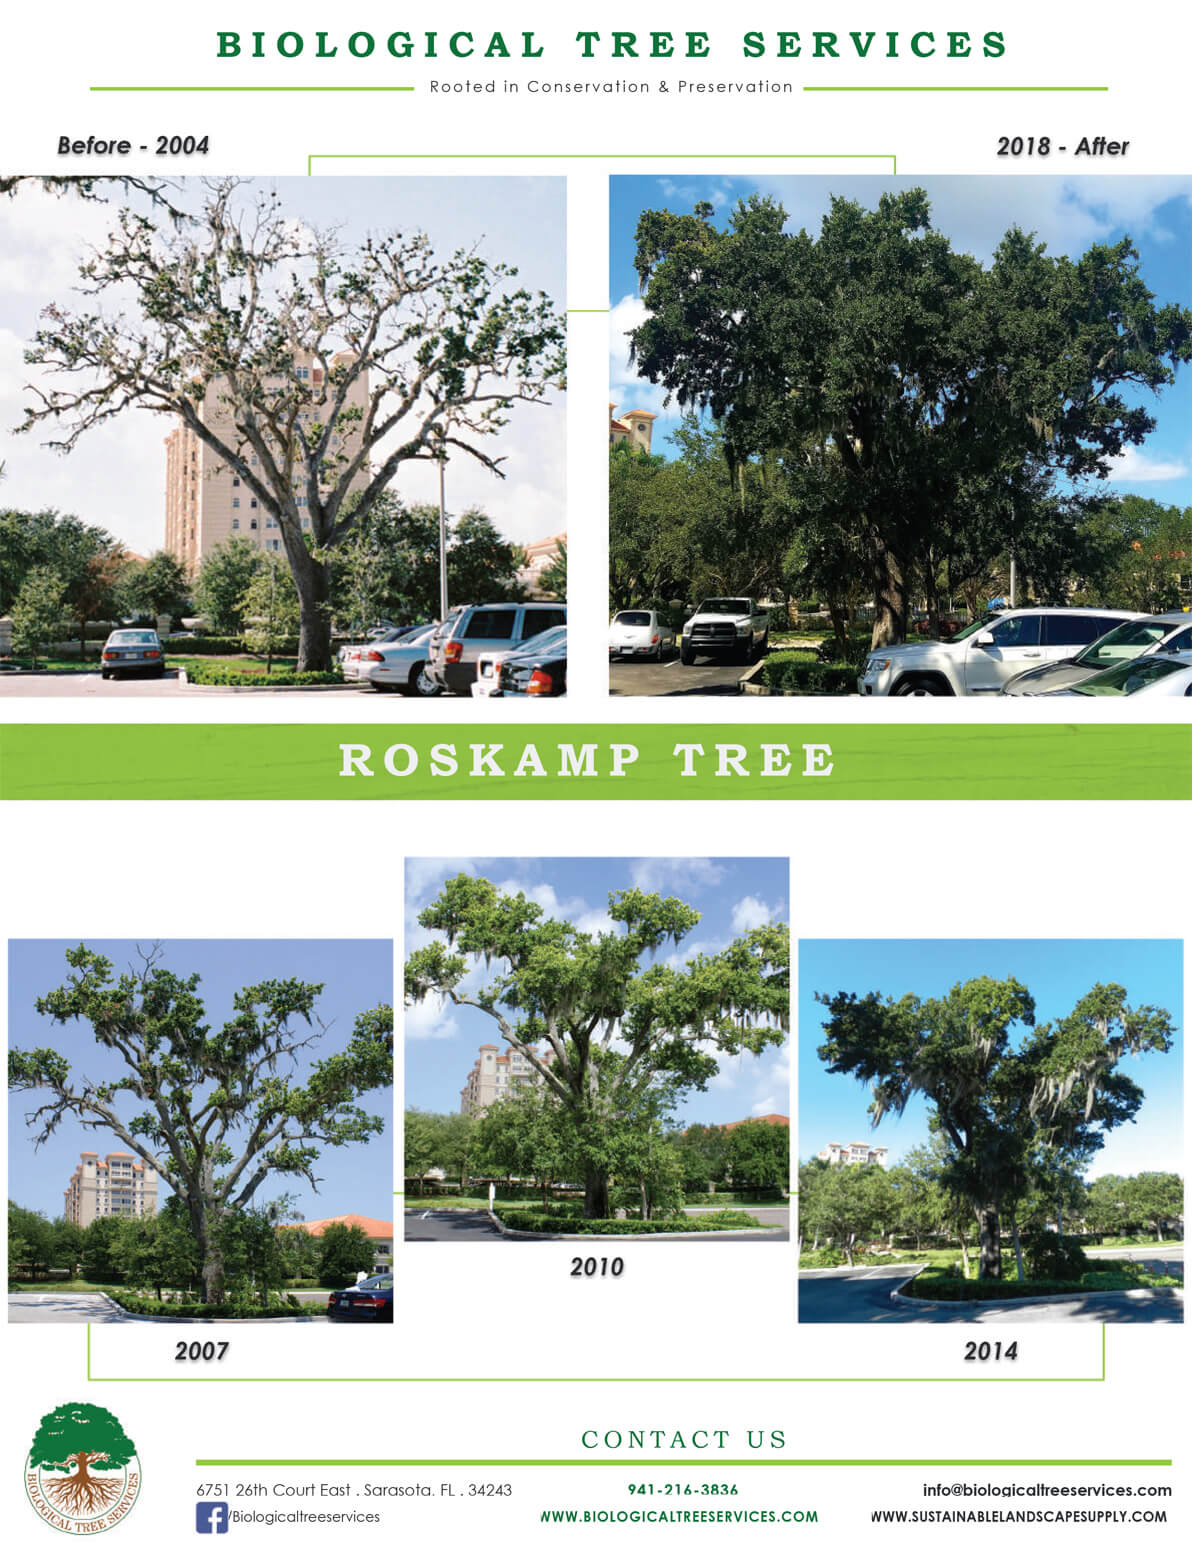 The Roskamp Tree